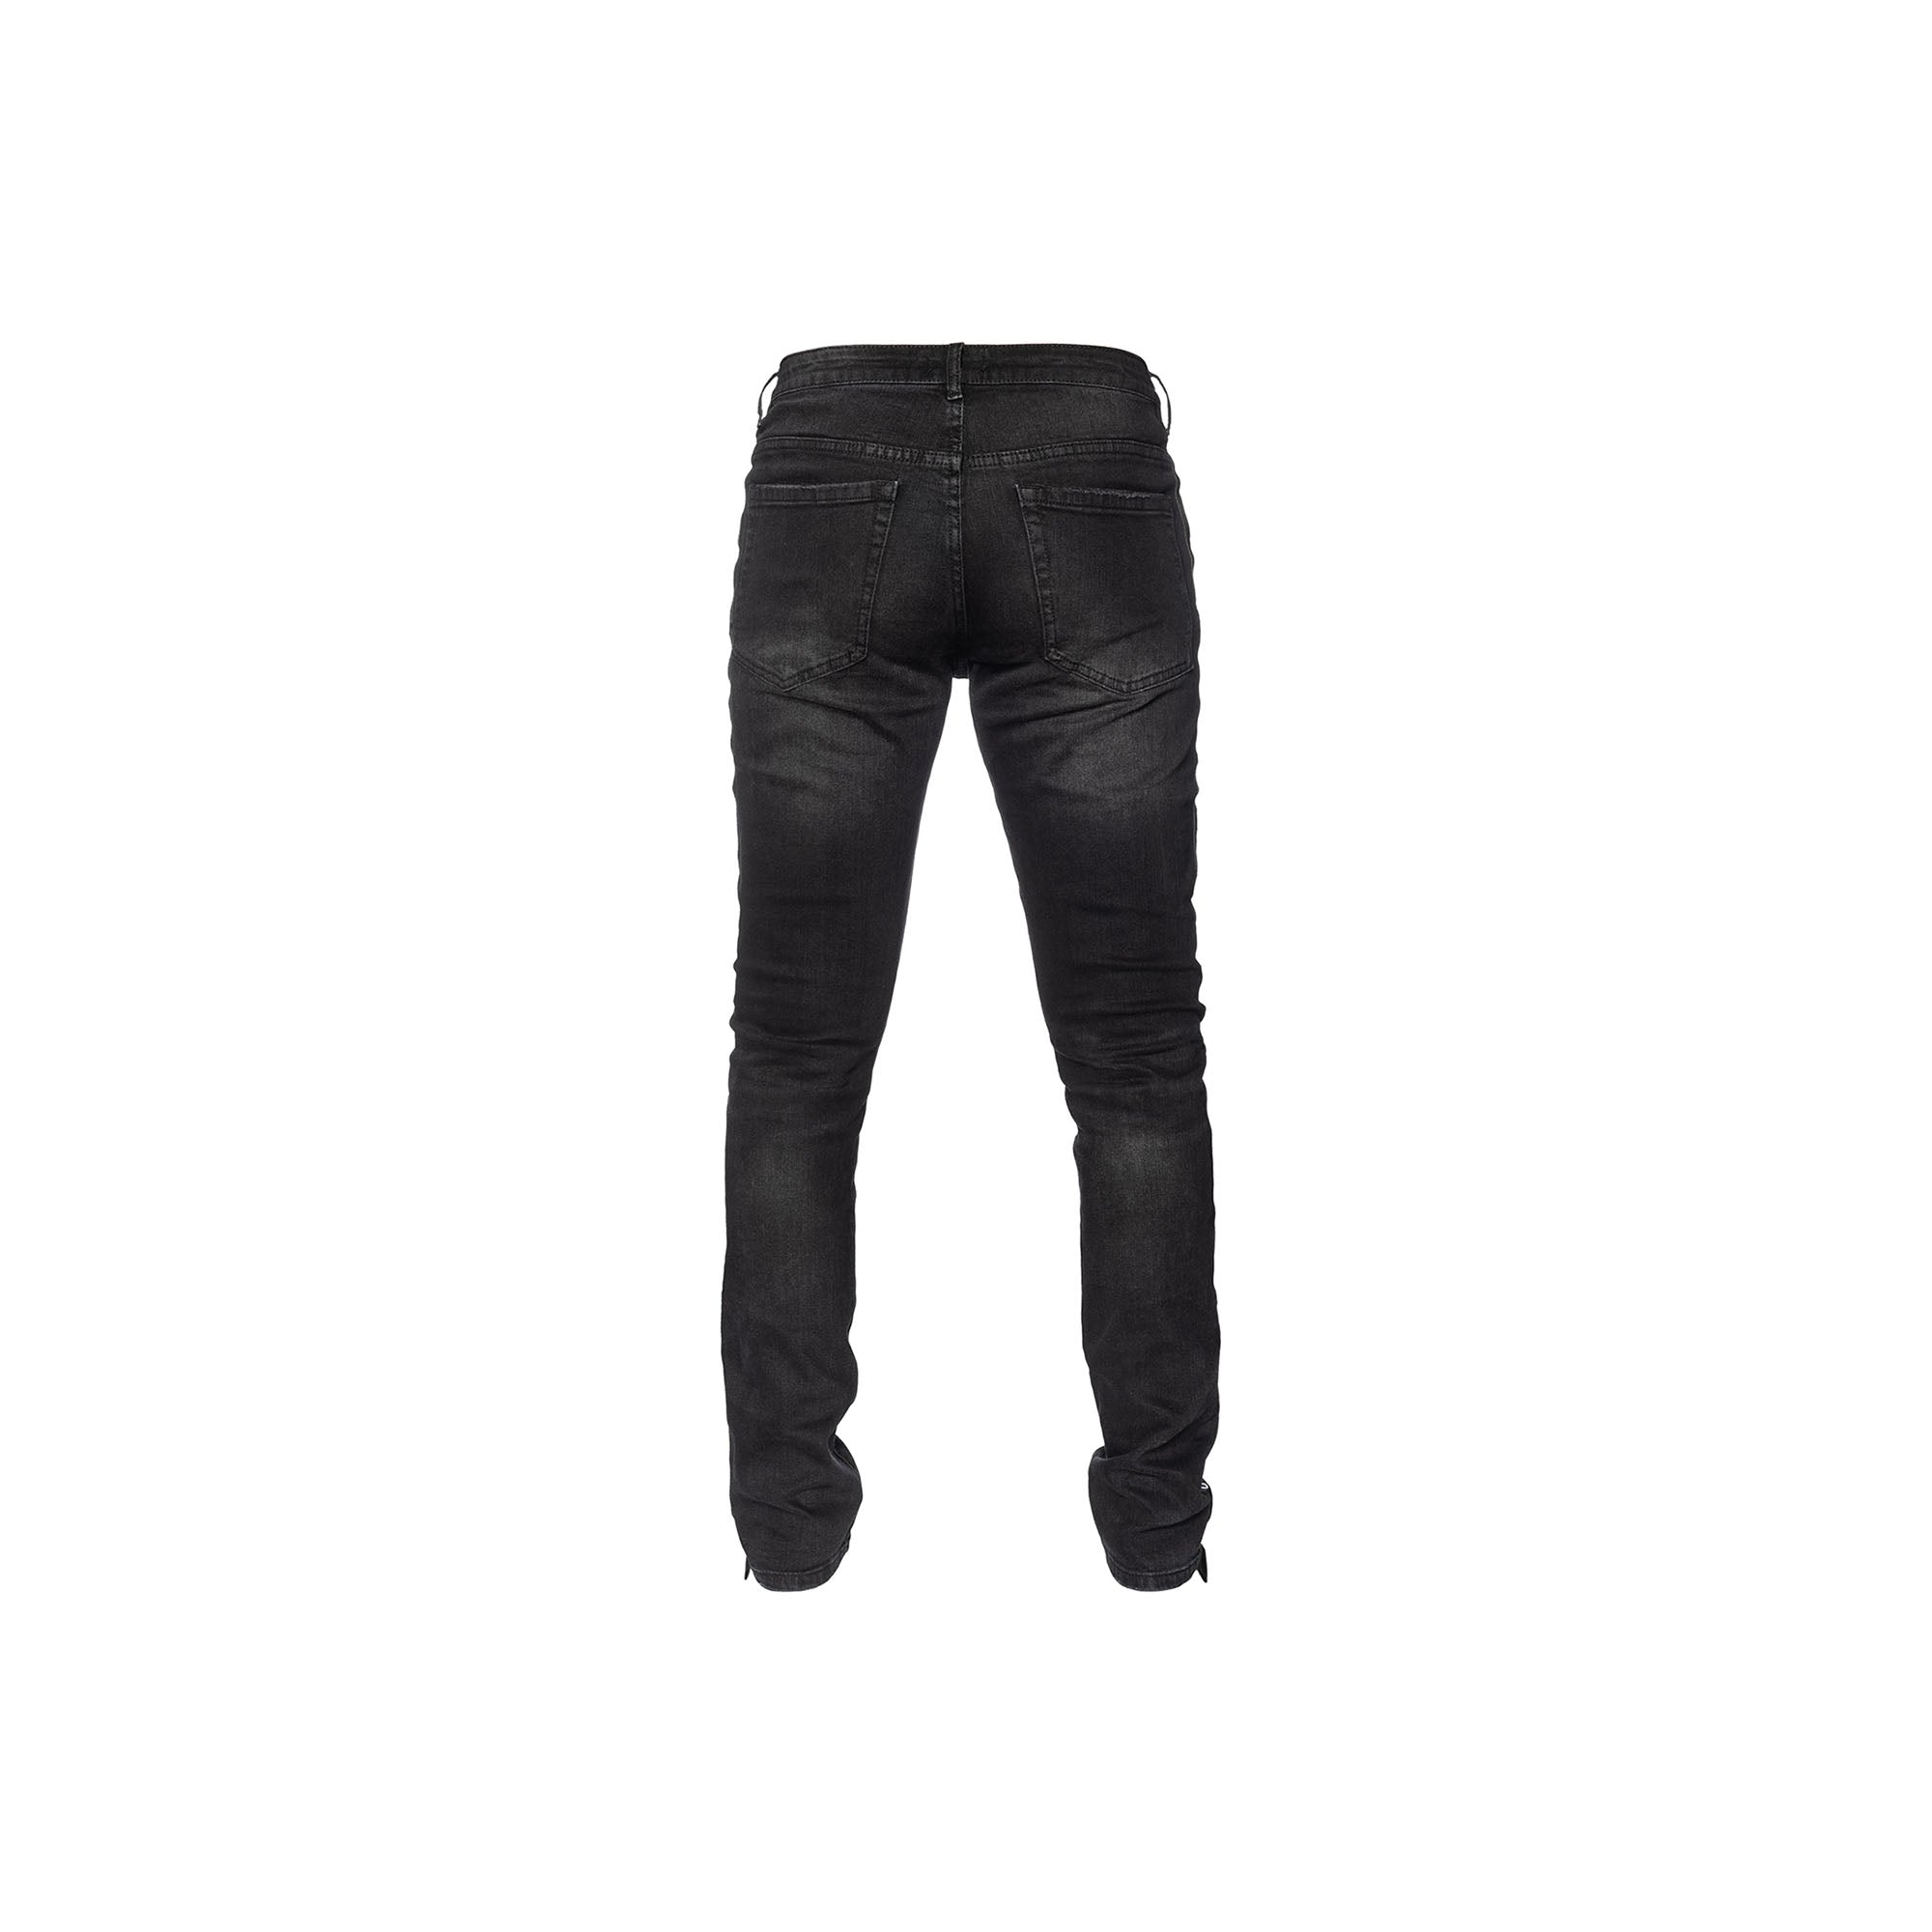 TAPE TAEB DENIM - VINTAGE BLACK